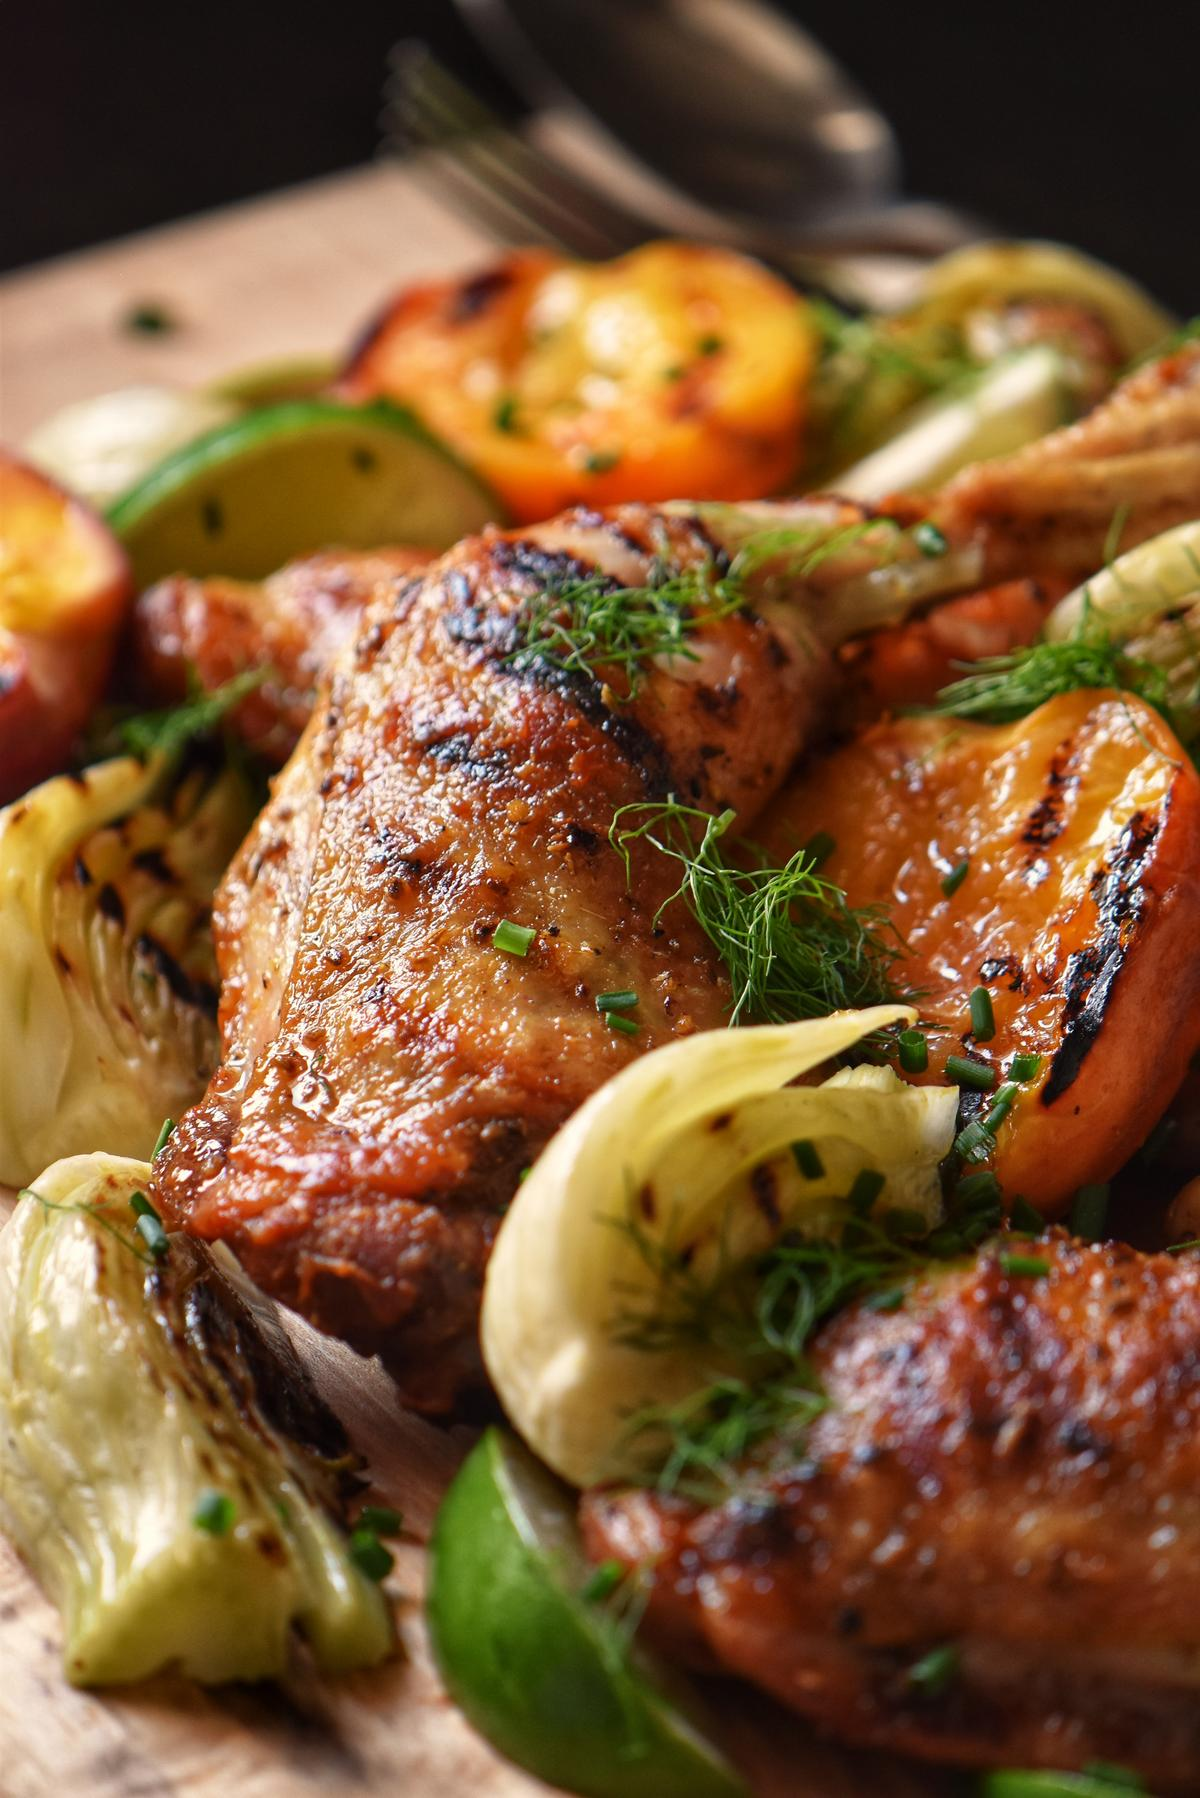 Grilled fennel and peaches with barbecued chicken.